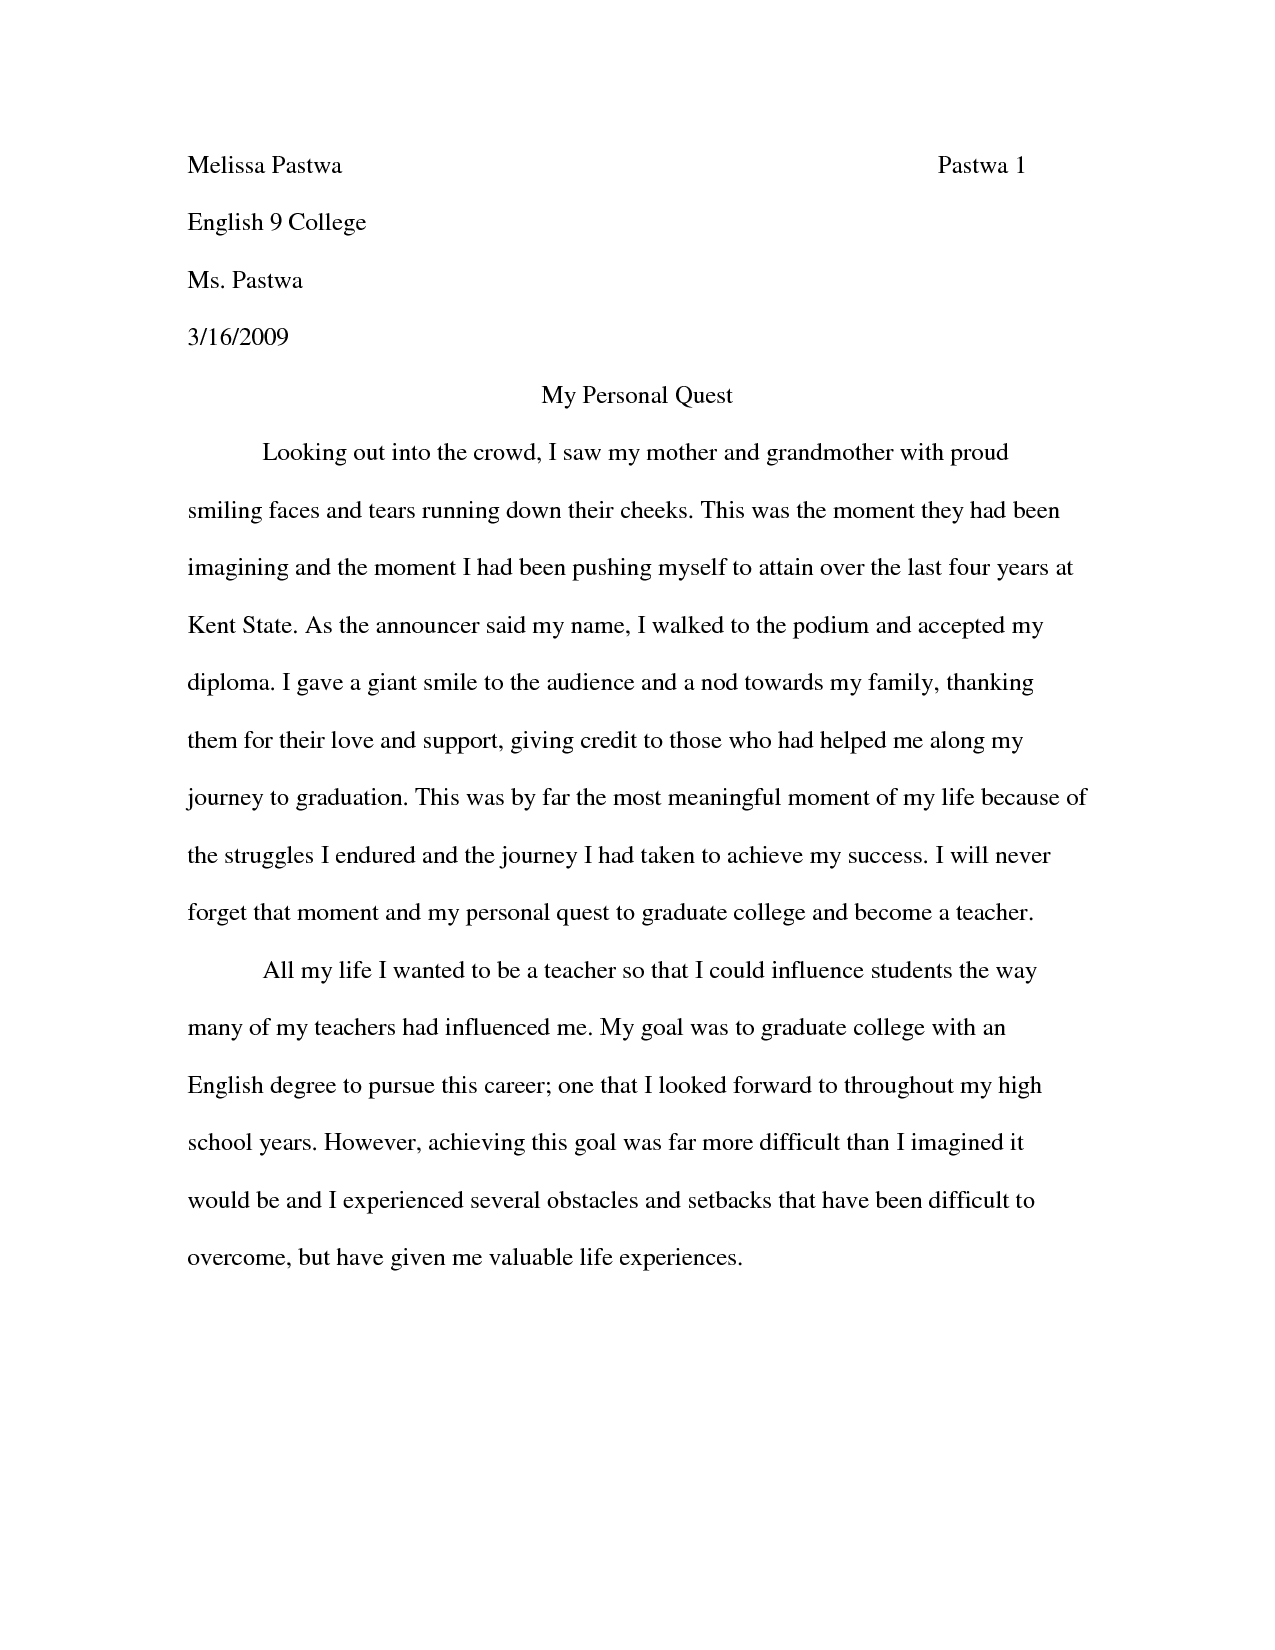 009 Writing Narrative Essay Example Dialogue Of L Amazing A About Being Judged Quizlet Powerpoint Full